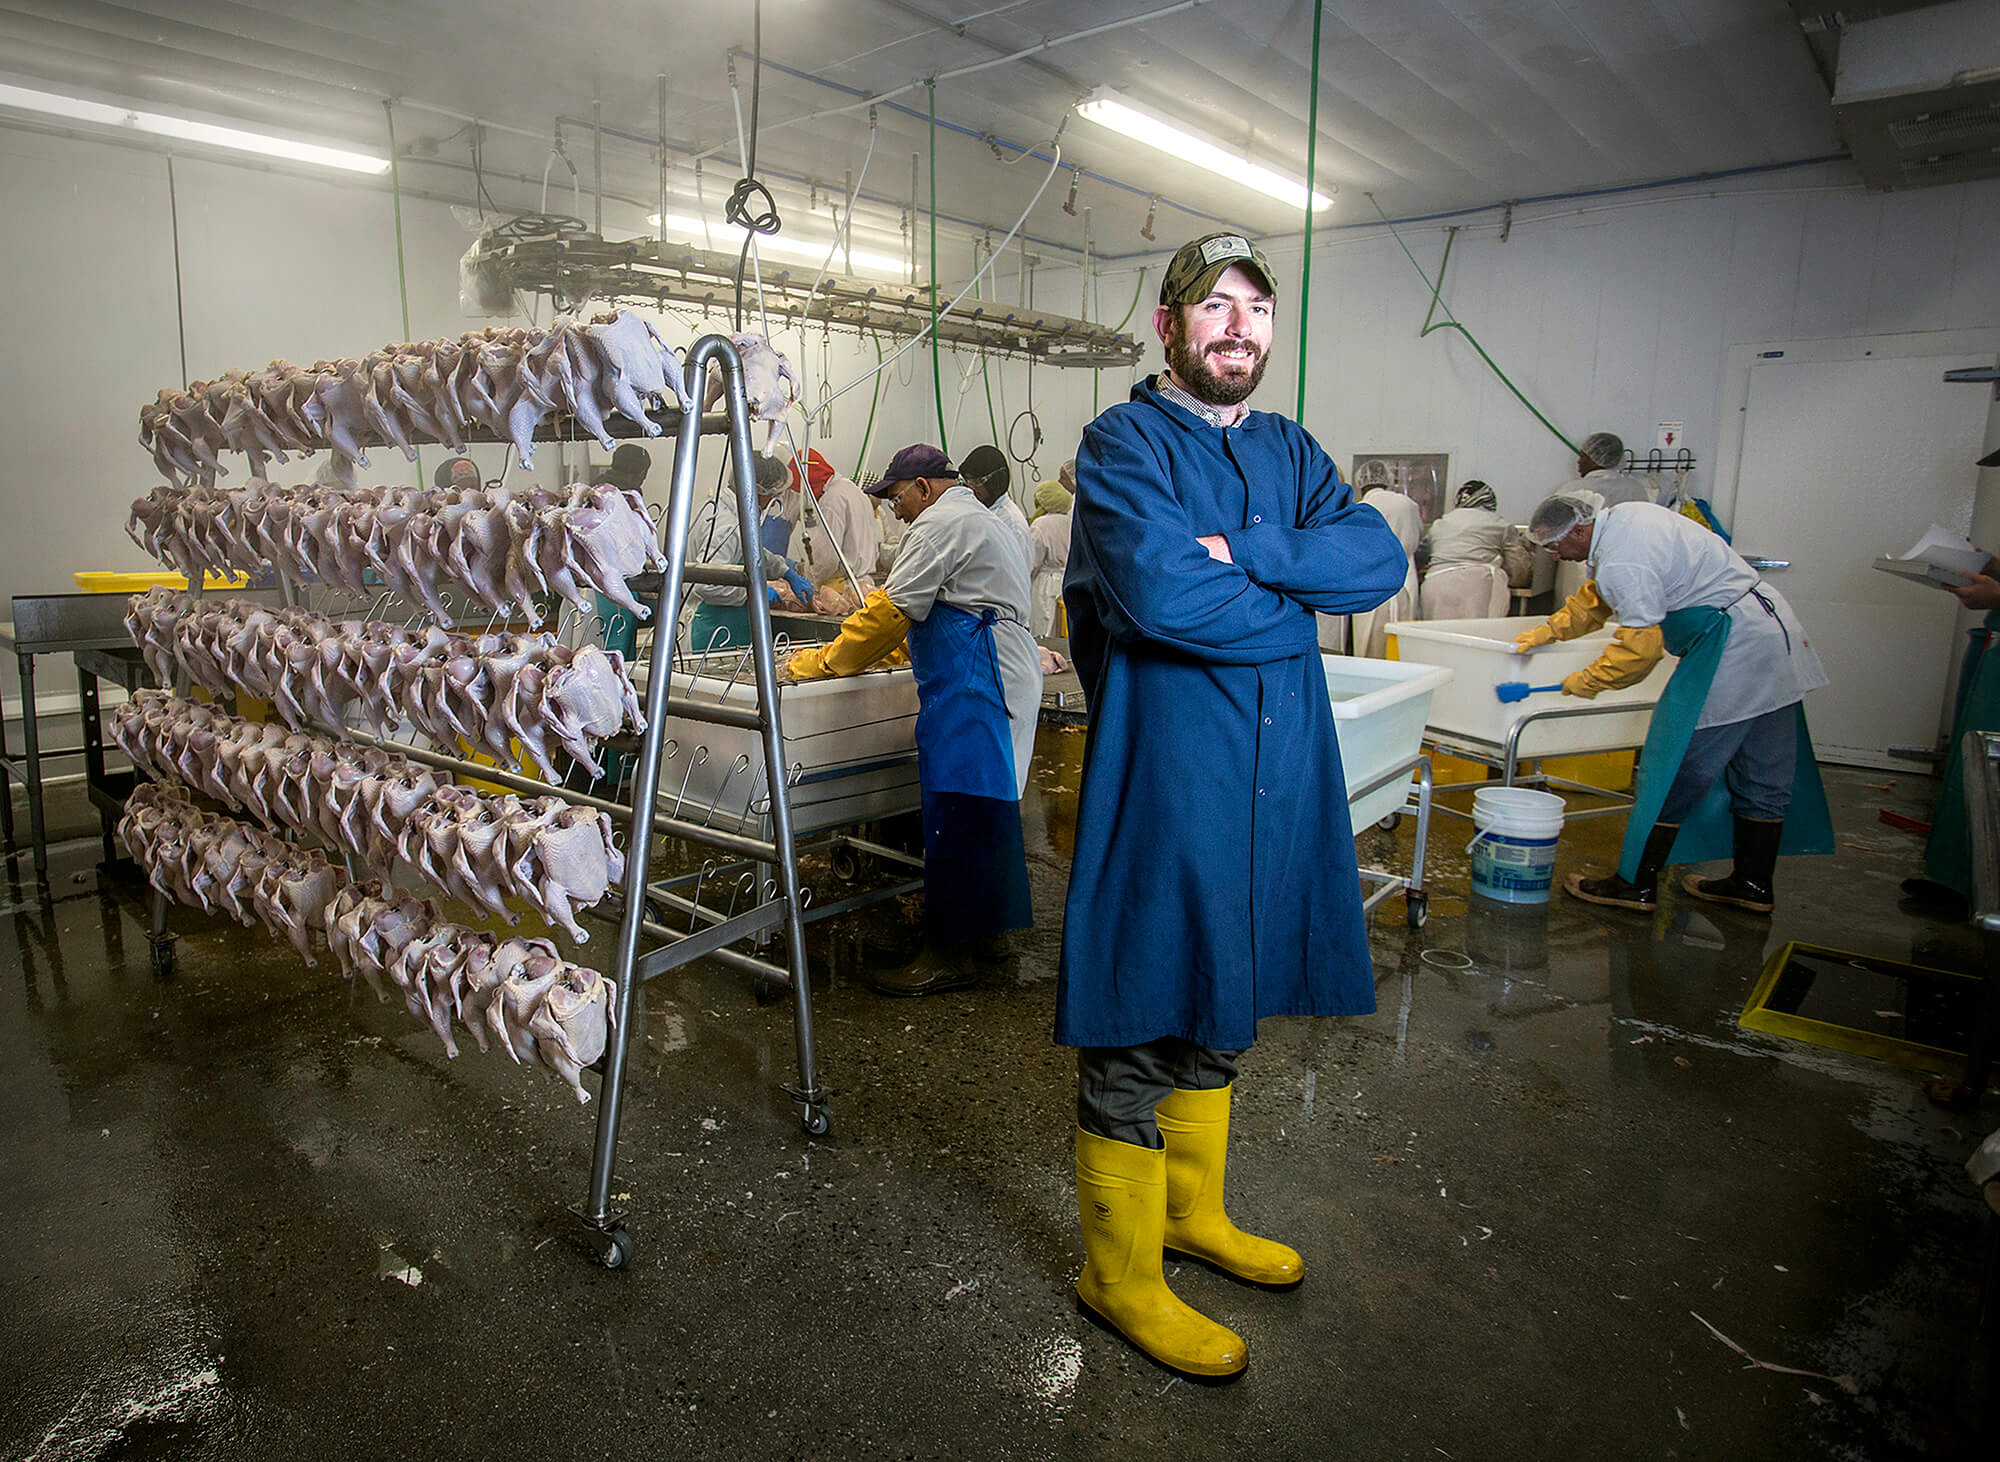 Portrait photography of Ryan Wilson, co-owner of Commonwealth Poultry Co., in their facility in Gardiner Maine